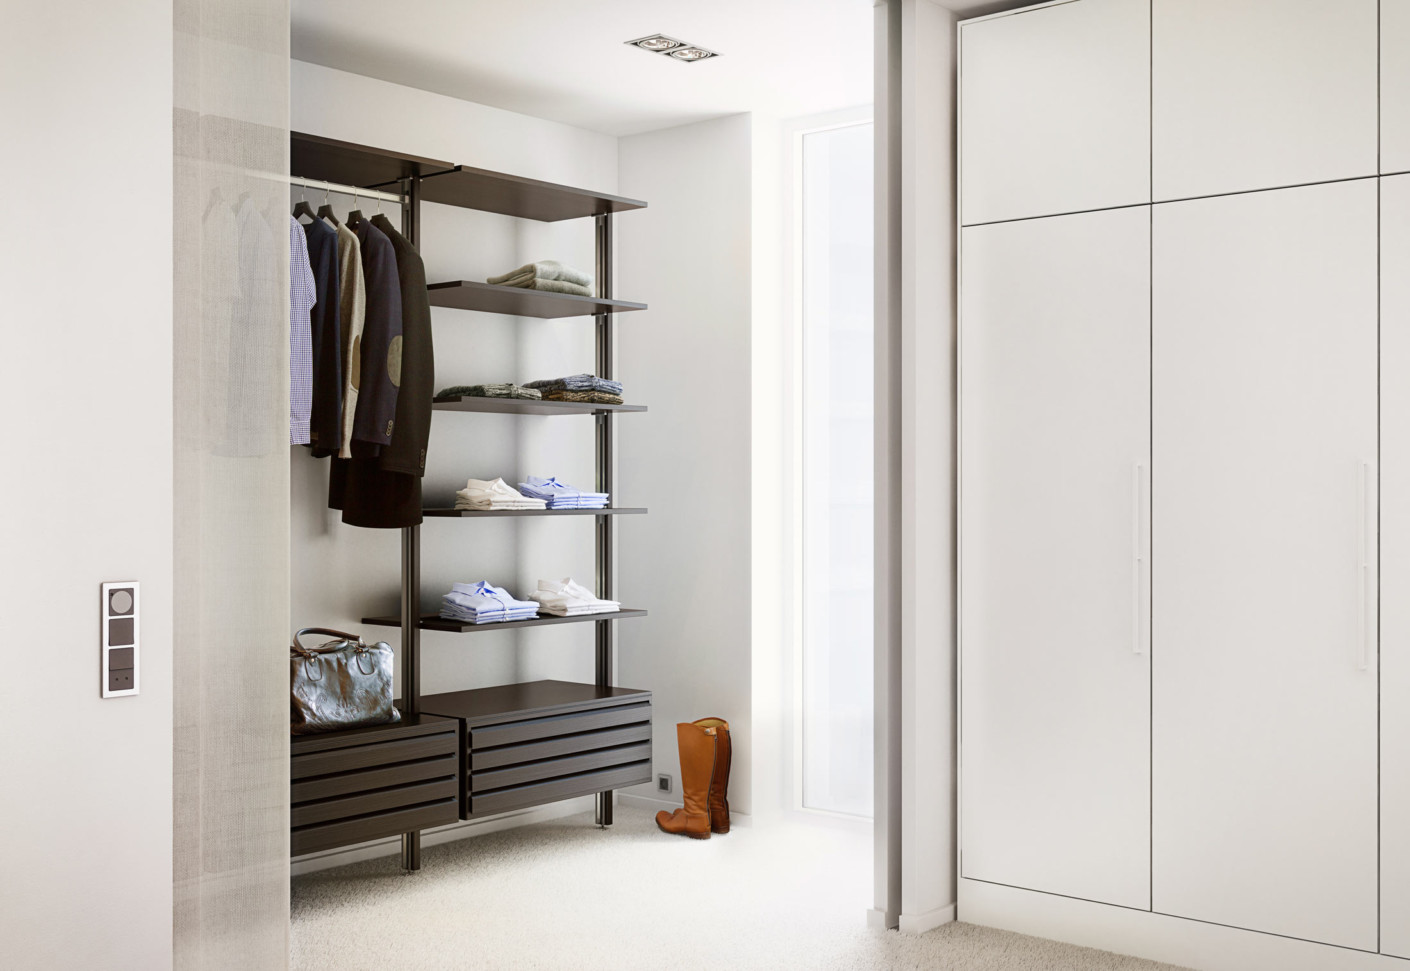 C serie garderobe black oak von uno form stylepark for Garderobe job